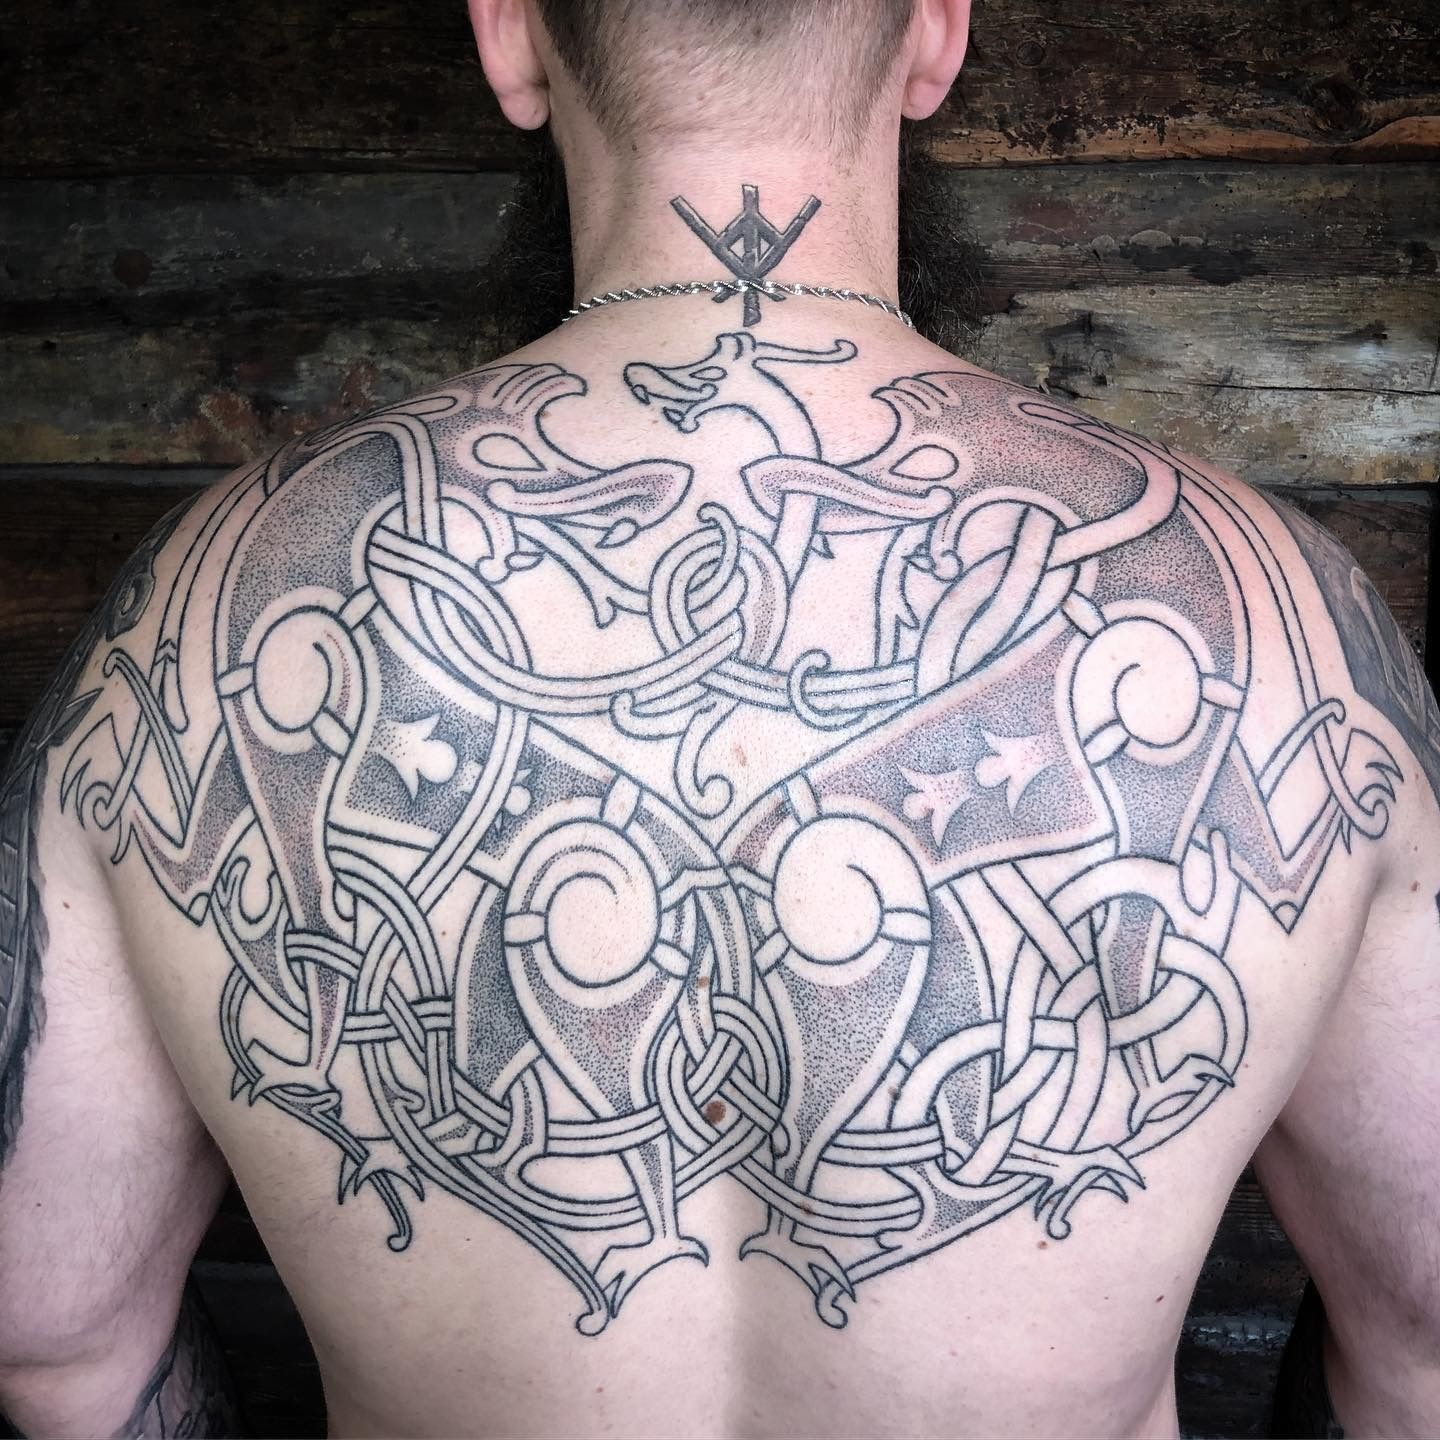 Pin by Sebastjan Vodušek on Tattoos Tattoos, Geometric